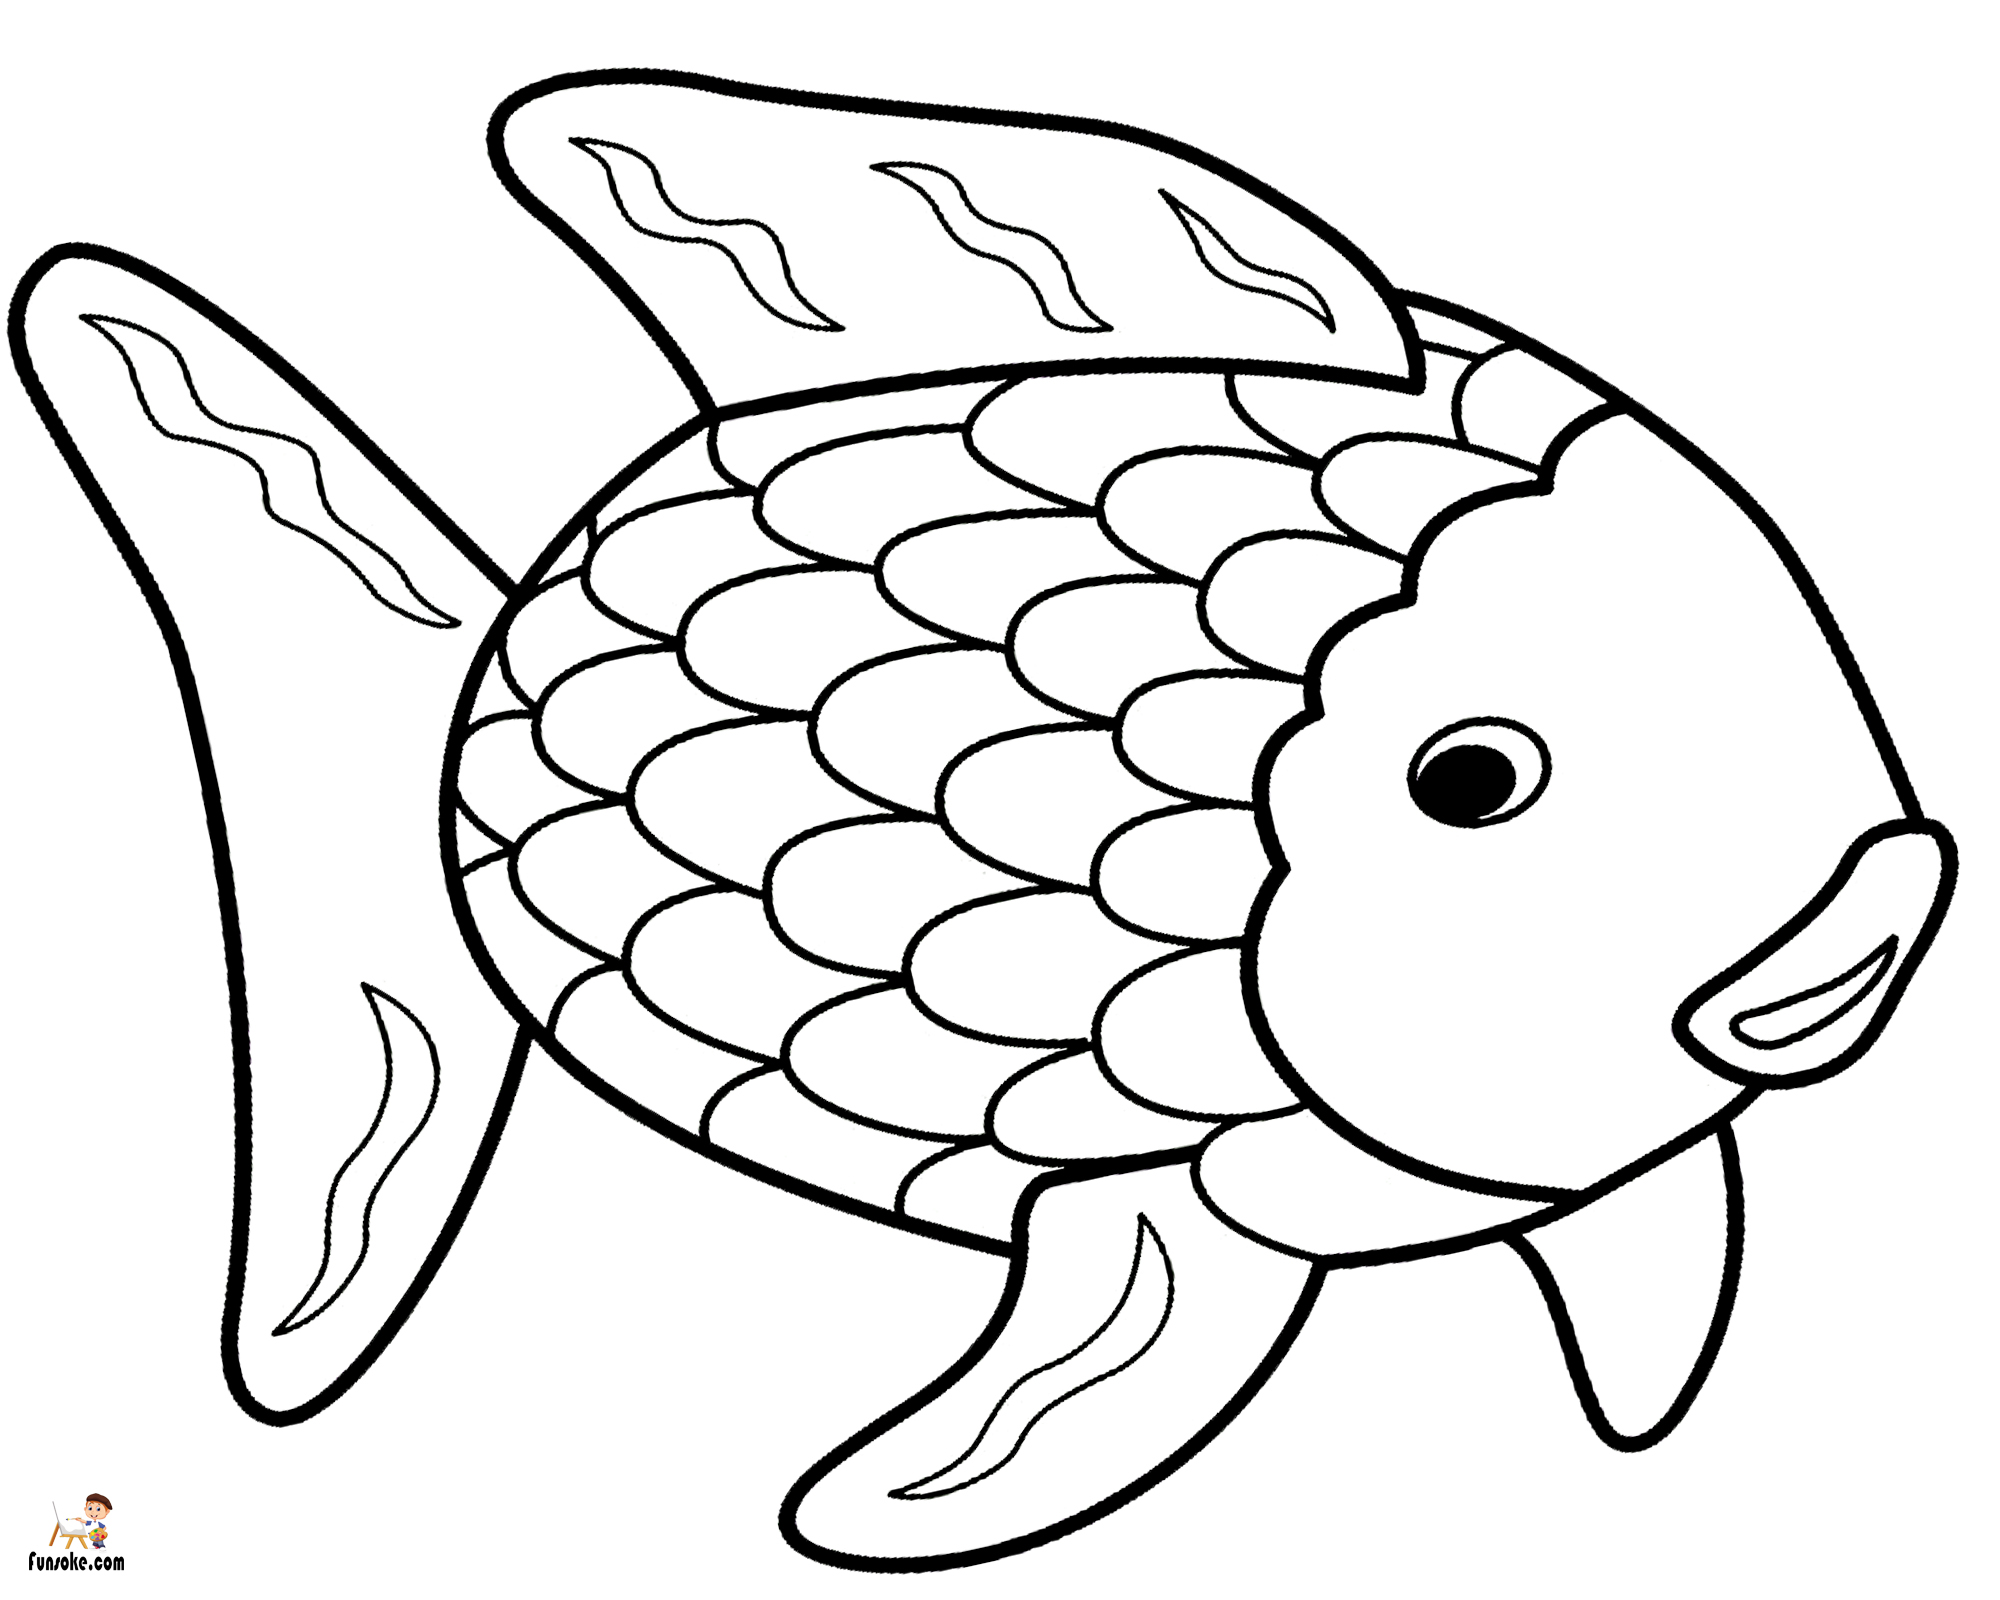 coloring pages for fish free fish coloring pages for kids fish coloring for pages